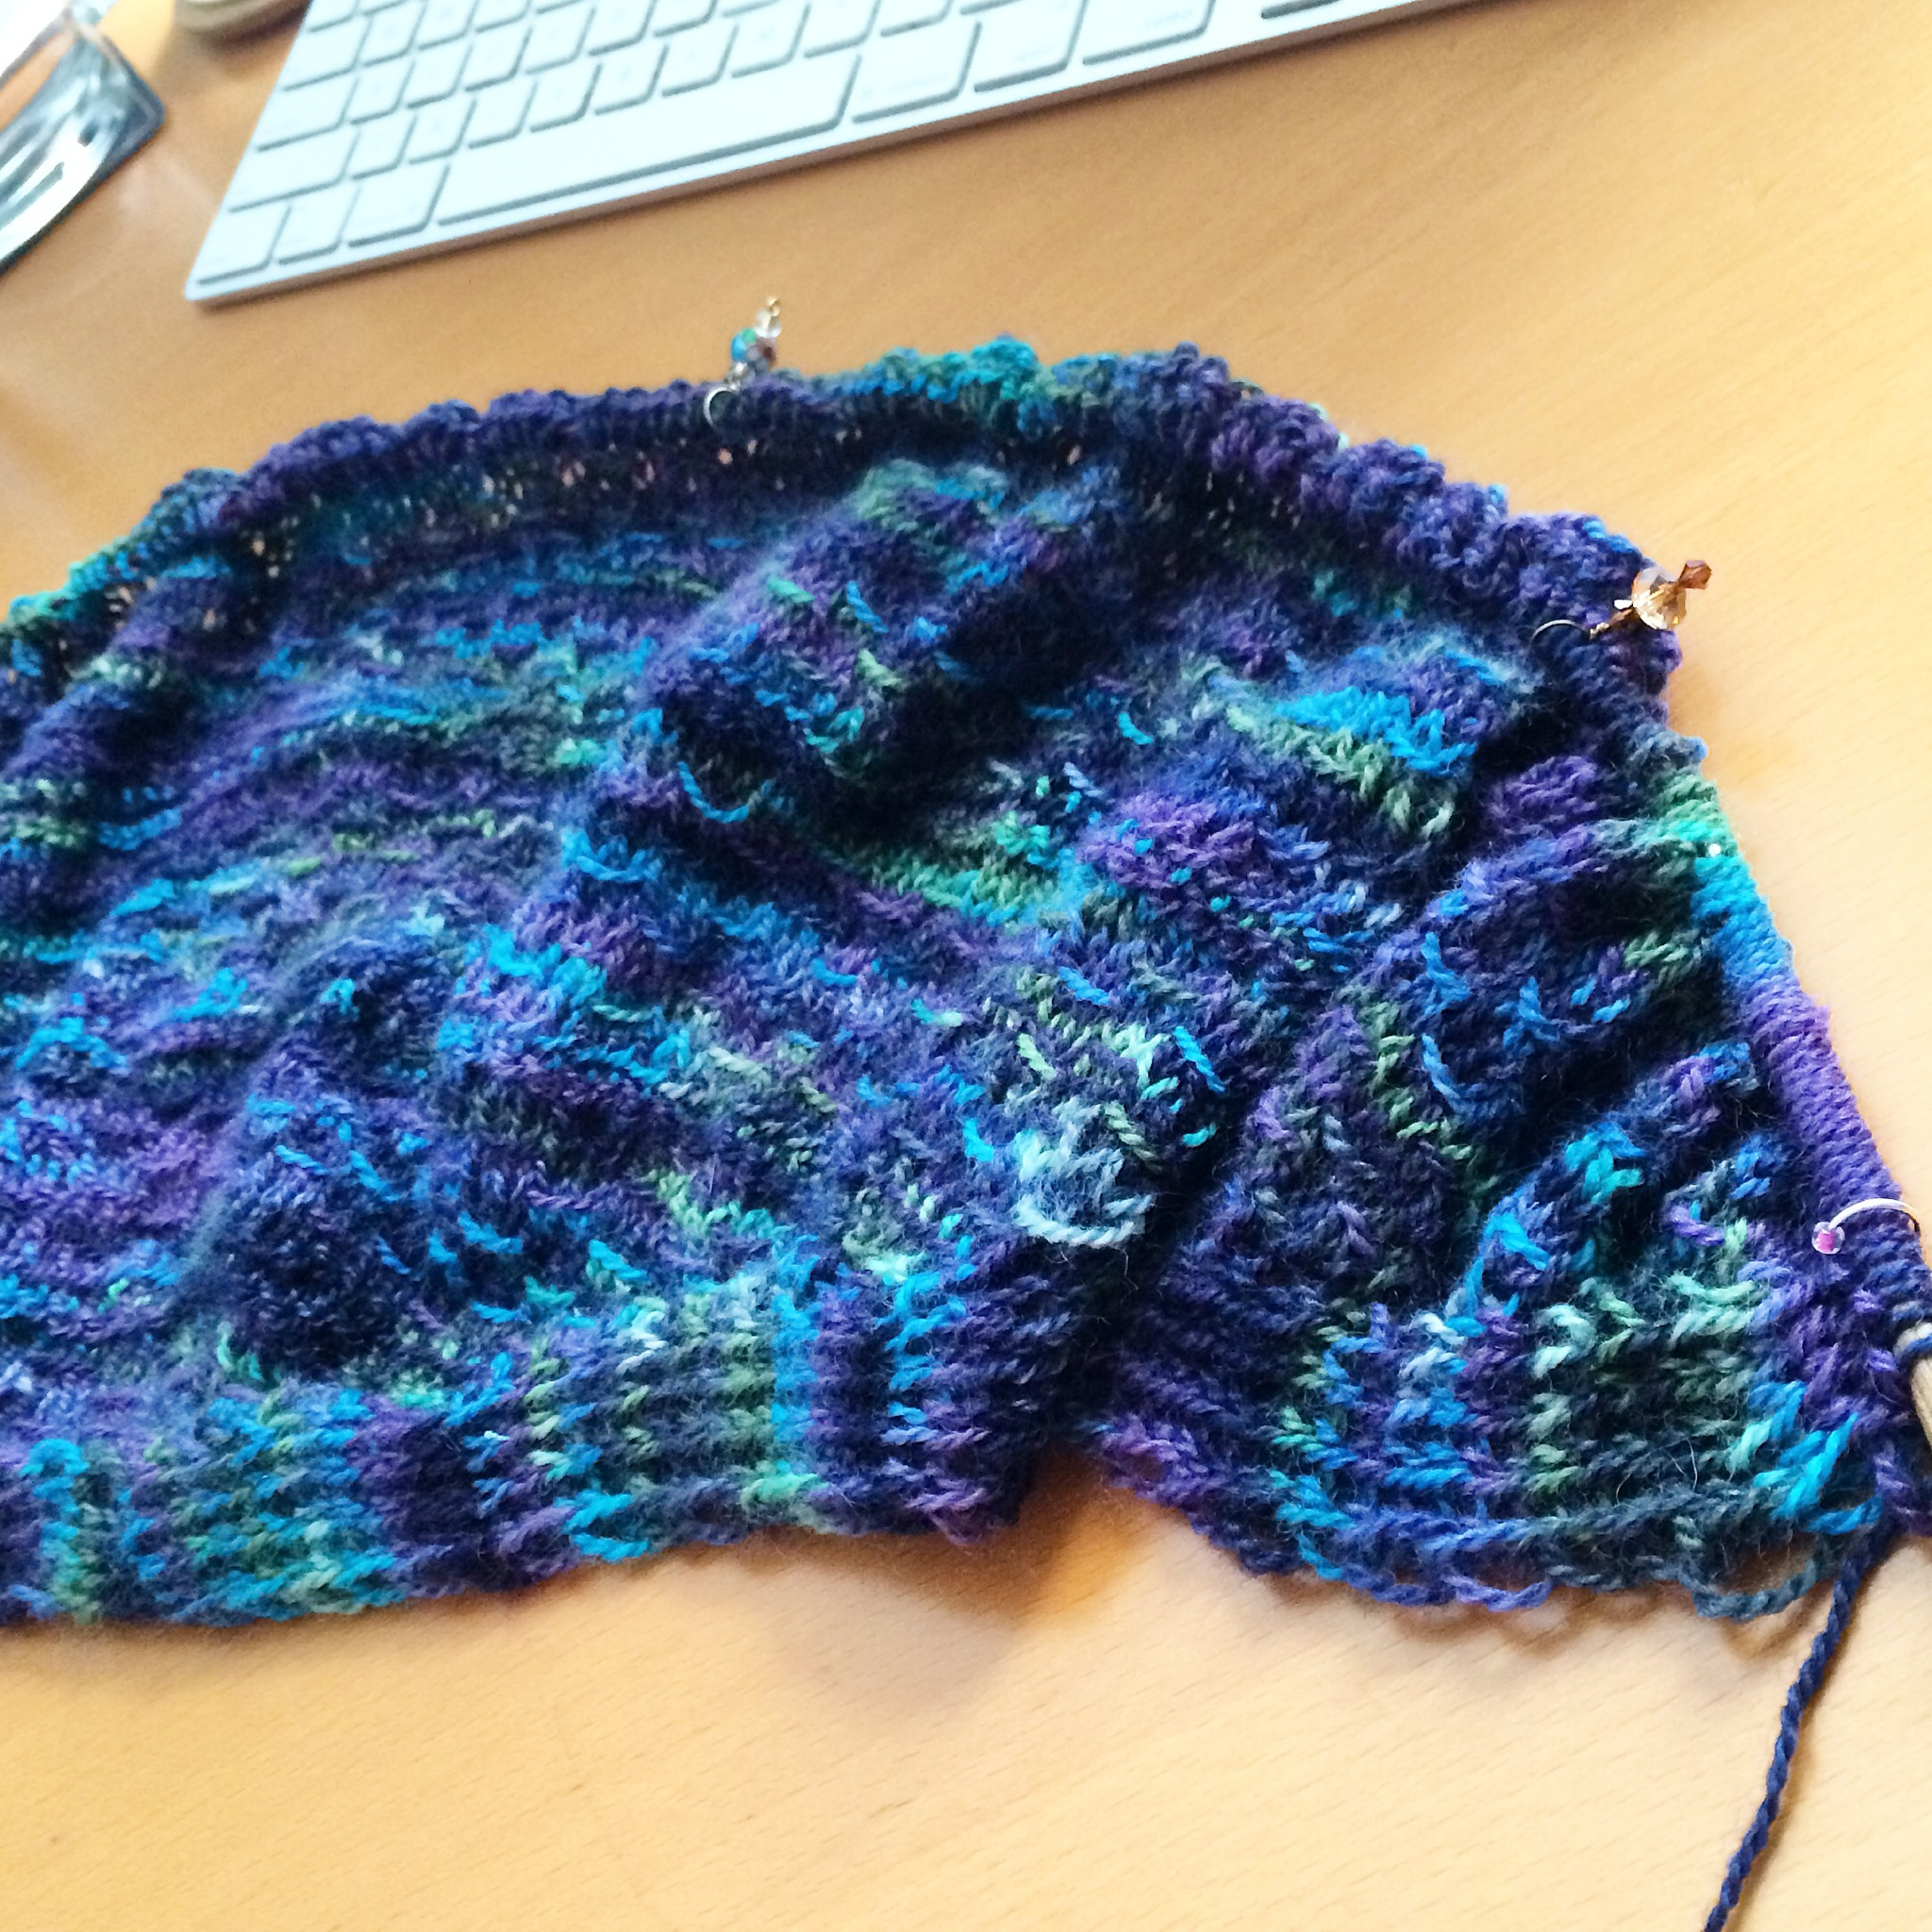 A partially knit blue variegated shawl on the needles.